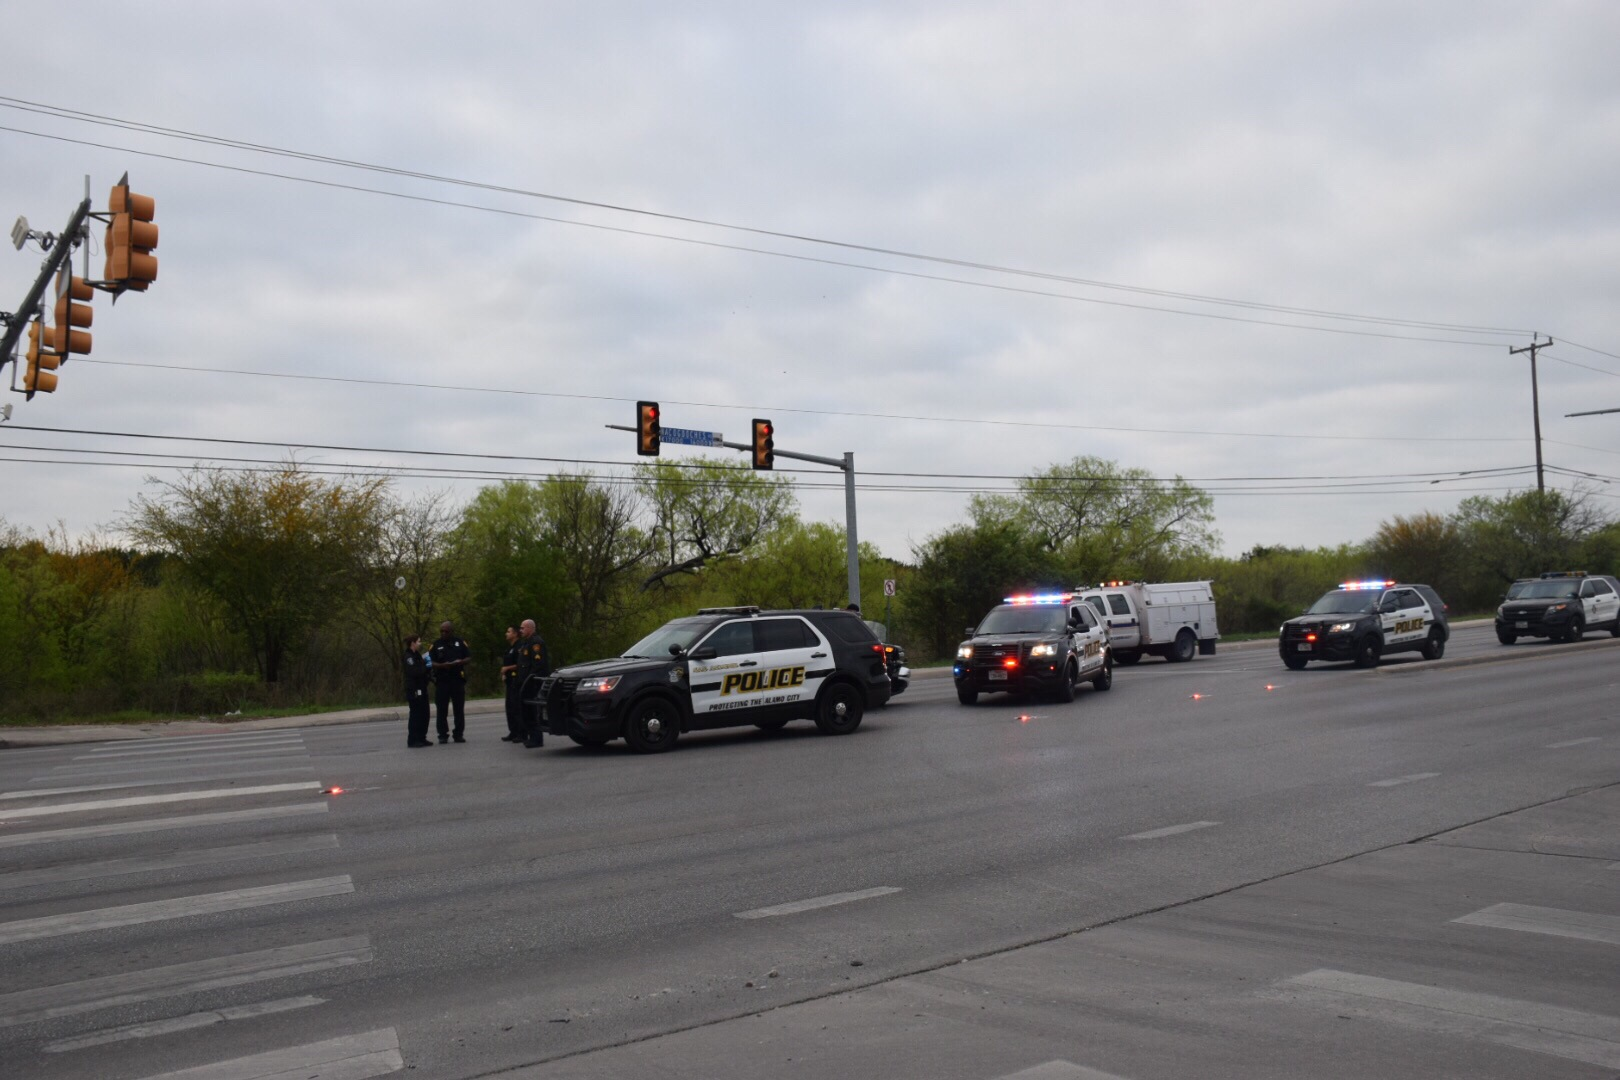 SAPD: Man, woman in 60s struck by SUV while crossing road near Rolling Oaks Mall | My San Antonio